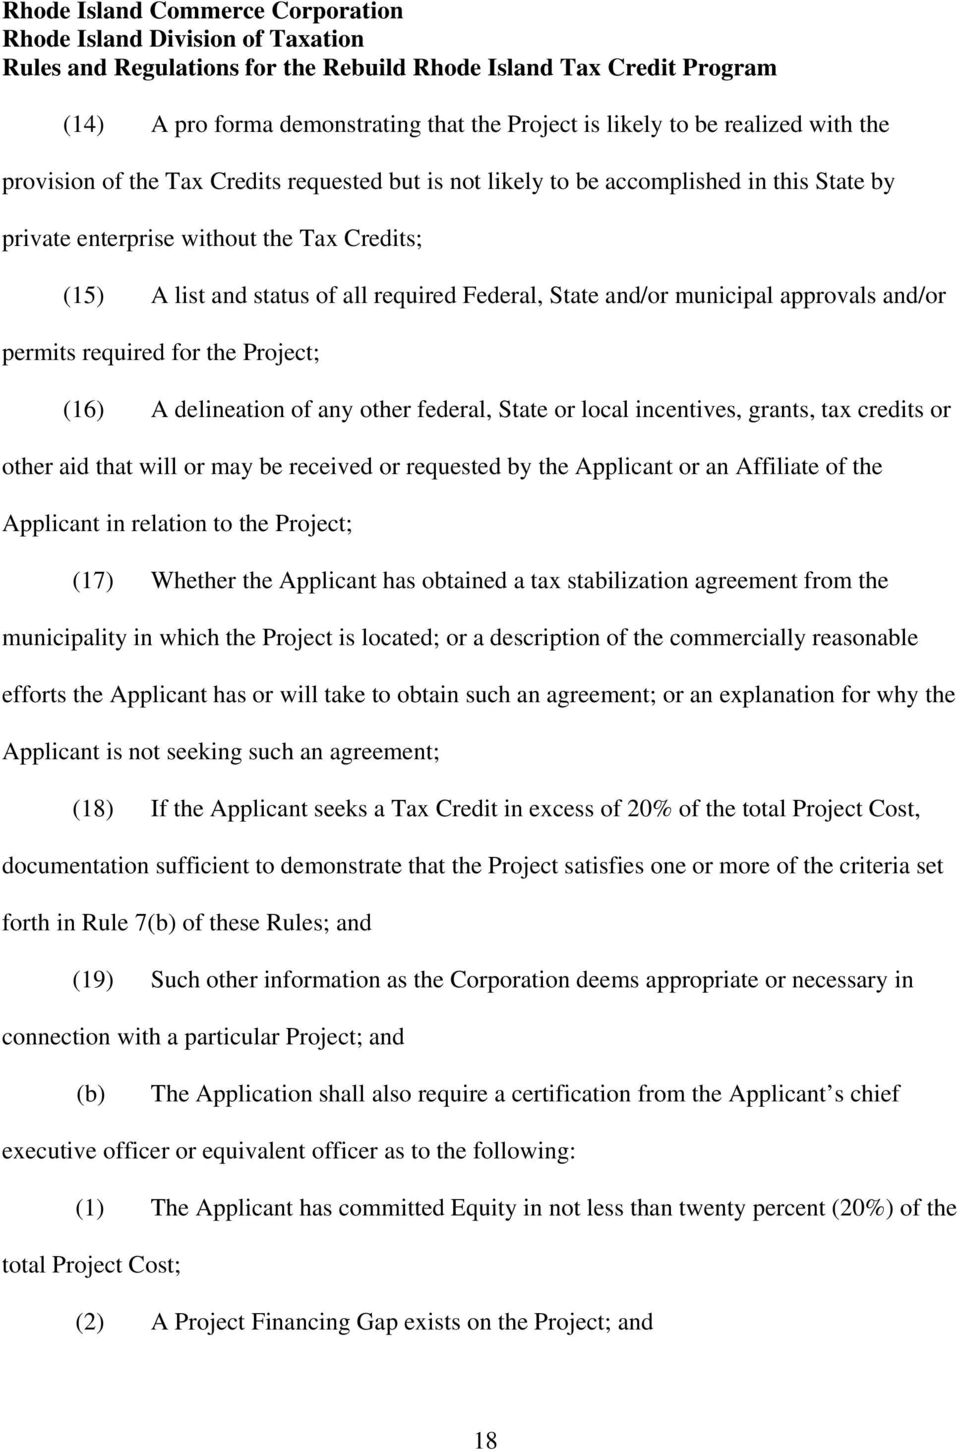 local incentives, grants, tax credits or other aid that will or may be received or requested by the Applicant or an Affiliate of the Applicant in relation to the Project; (17) Whether the Applicant